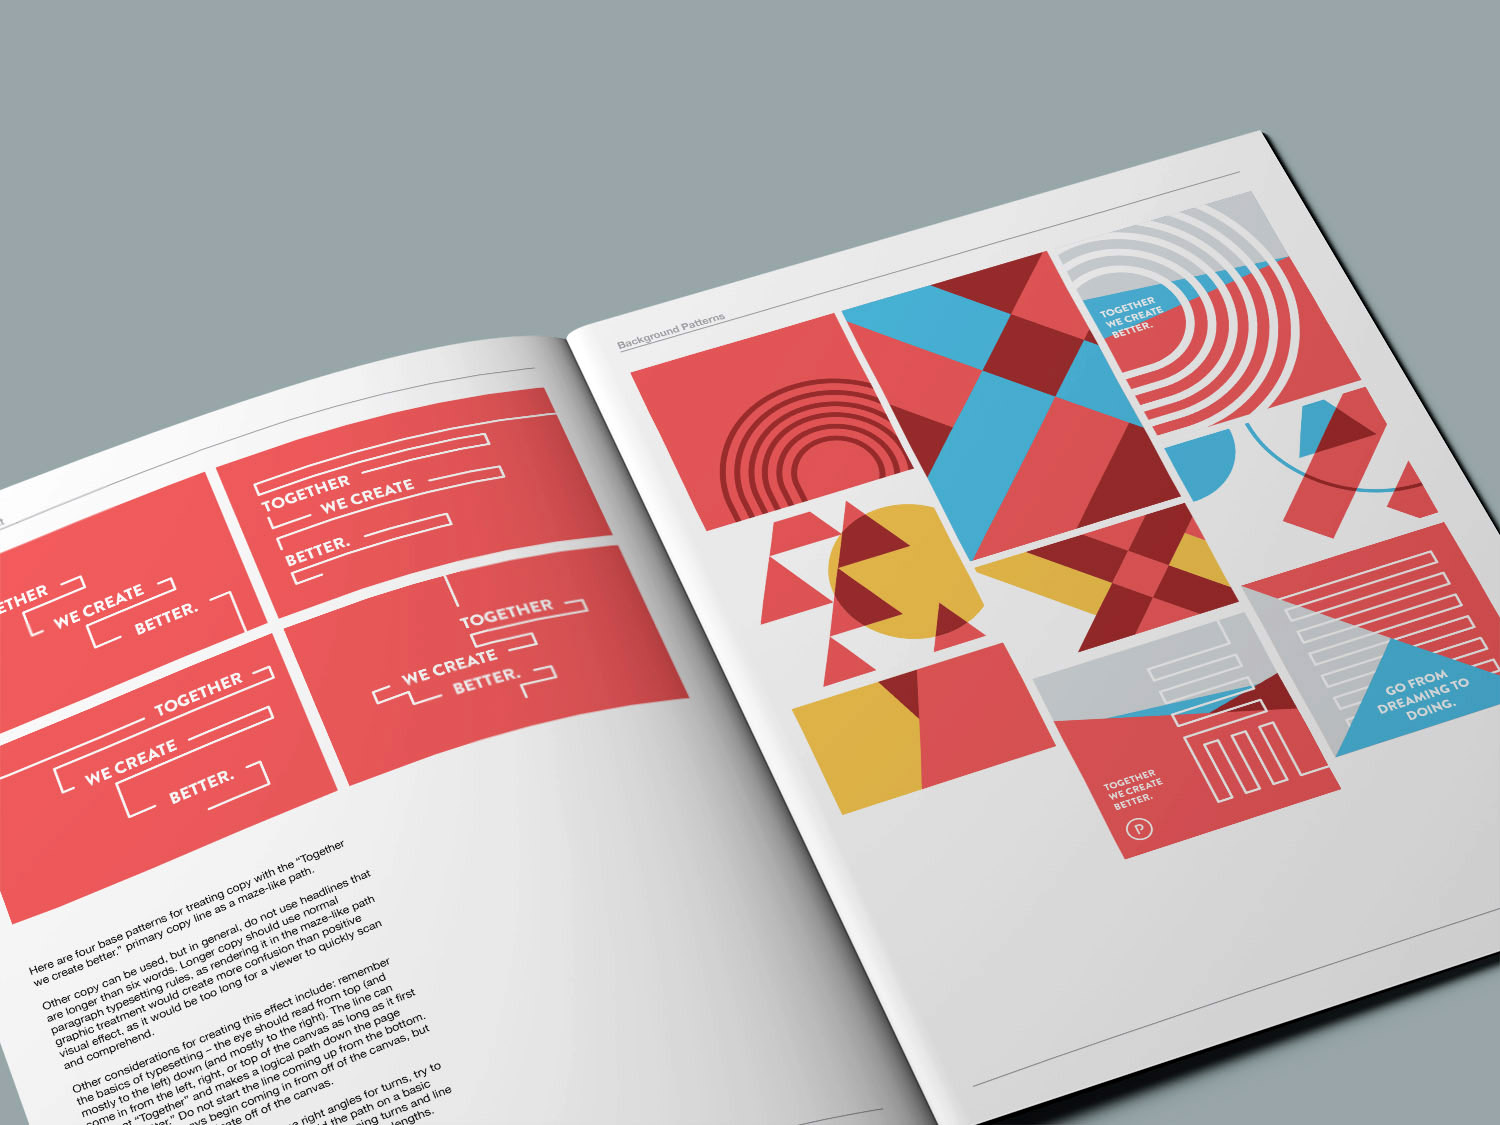 Brand style guidelines shows how to use the graphic design system of the line maze assets and elements and the patterns to use in the branding.